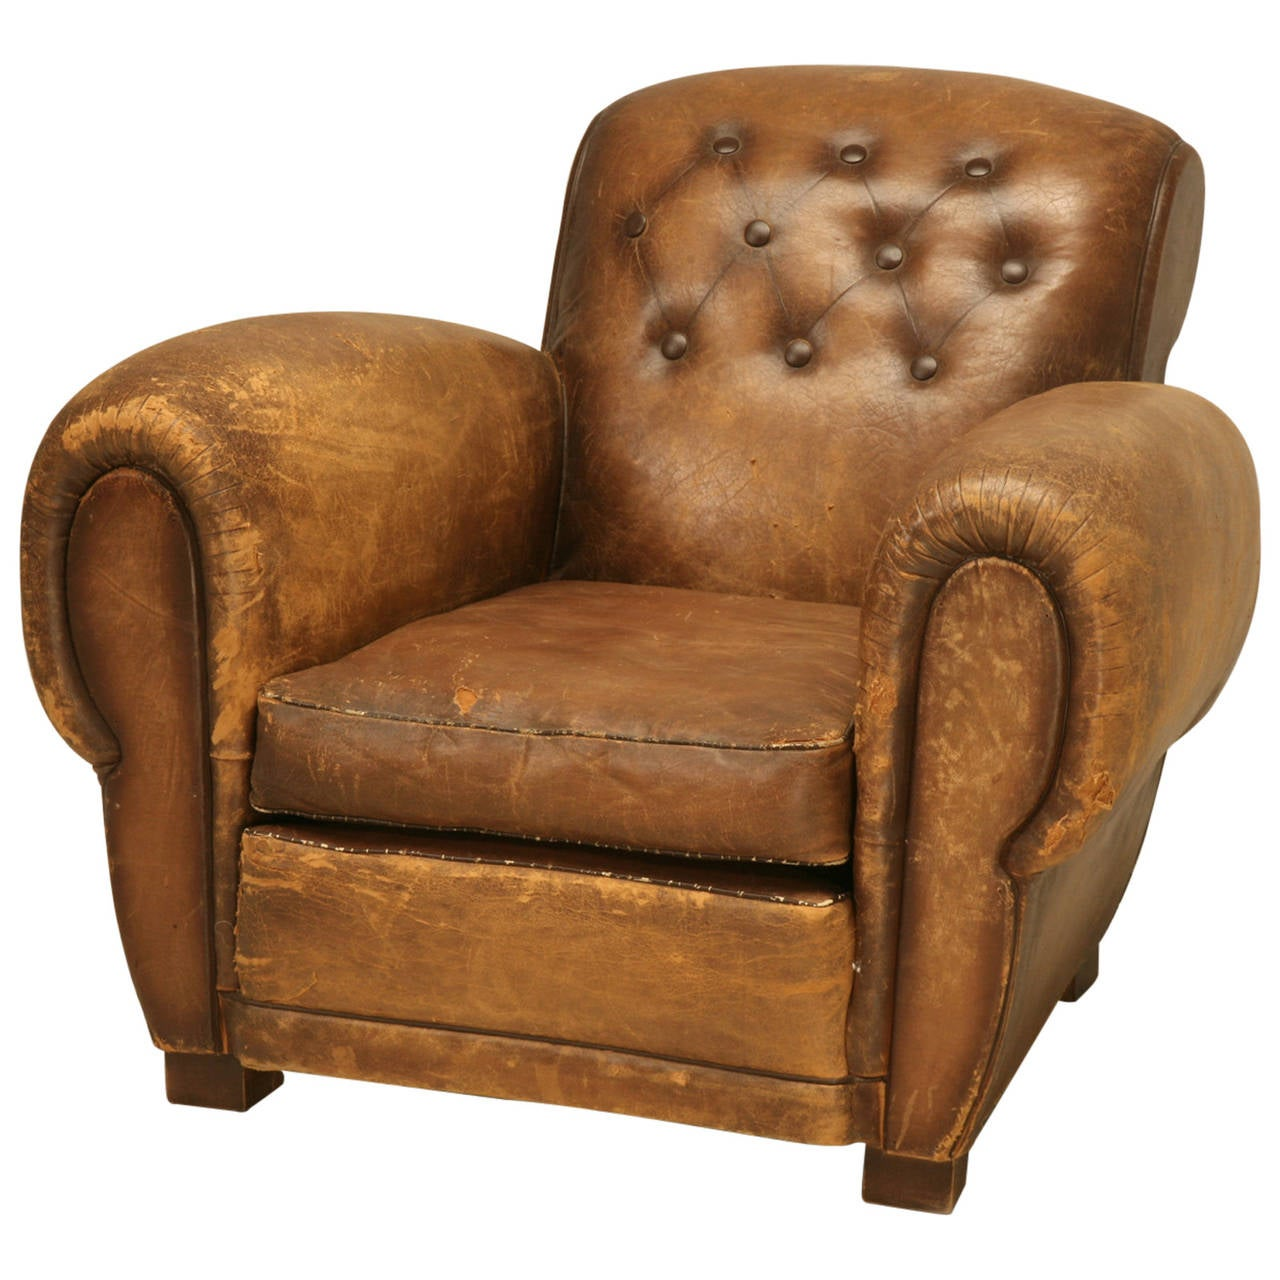 French Club Chair French Art Deco Club Chair In Original Leather At 1stdibs